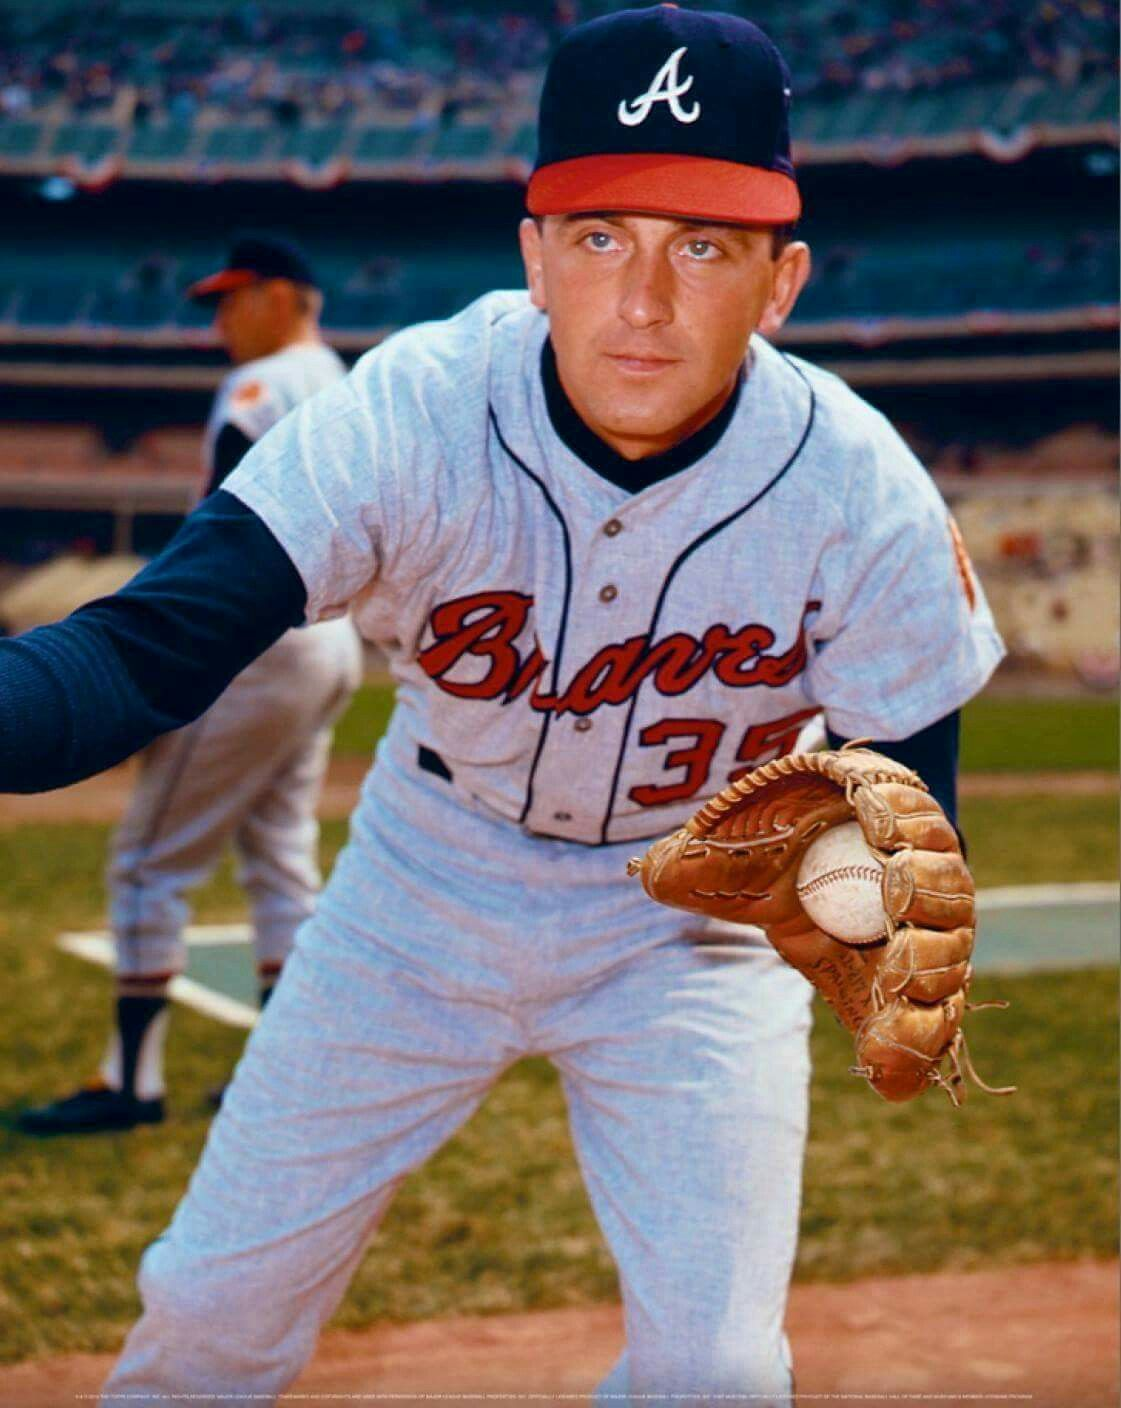 Phil Niekro | Atlanta braves baseball